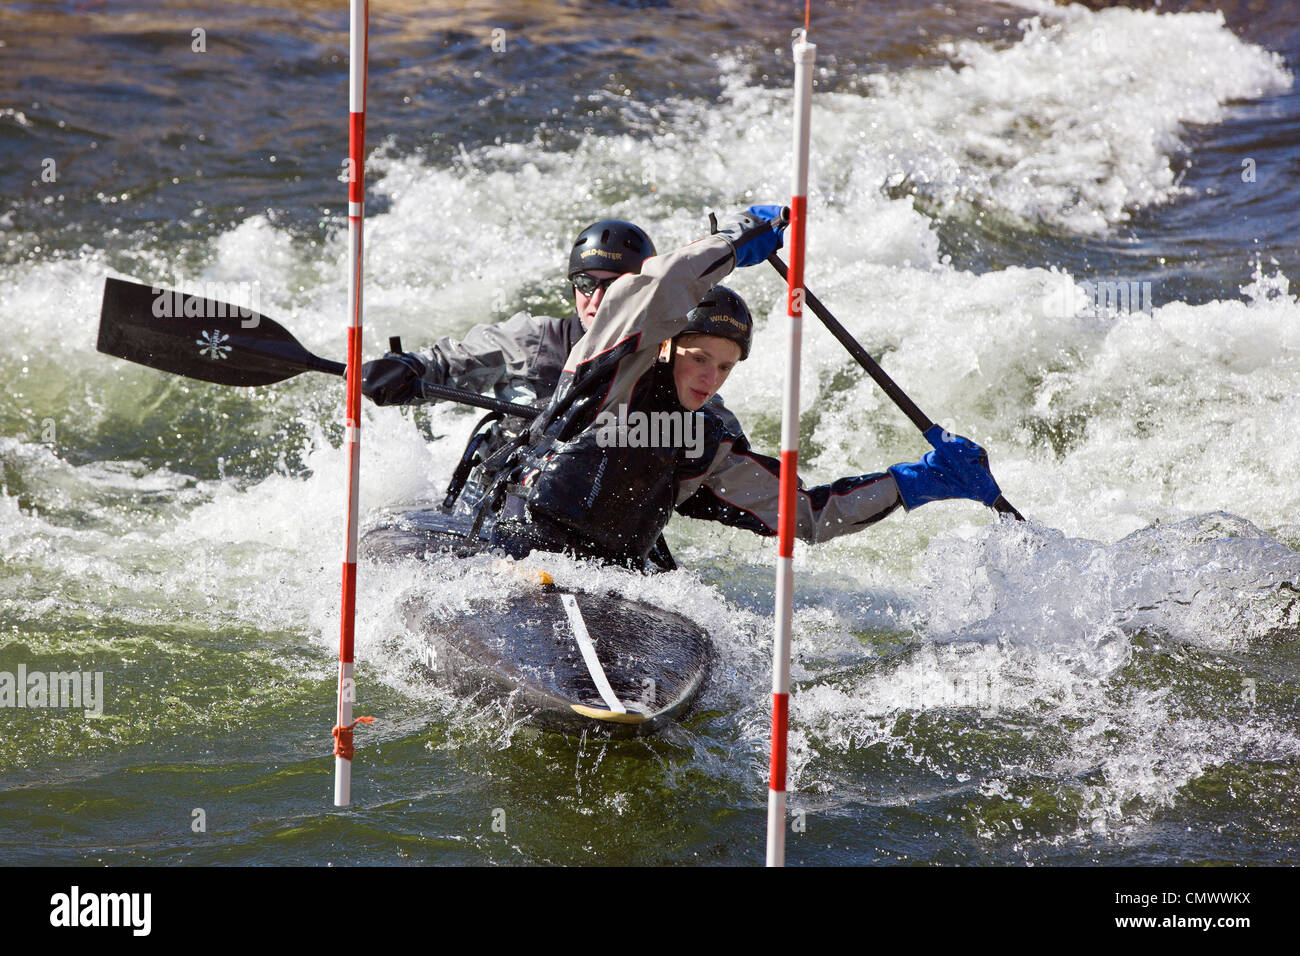 Tandem whitewater kayak slalom racers, Arkansas River, Salida, Colorado, USA - Stock Image